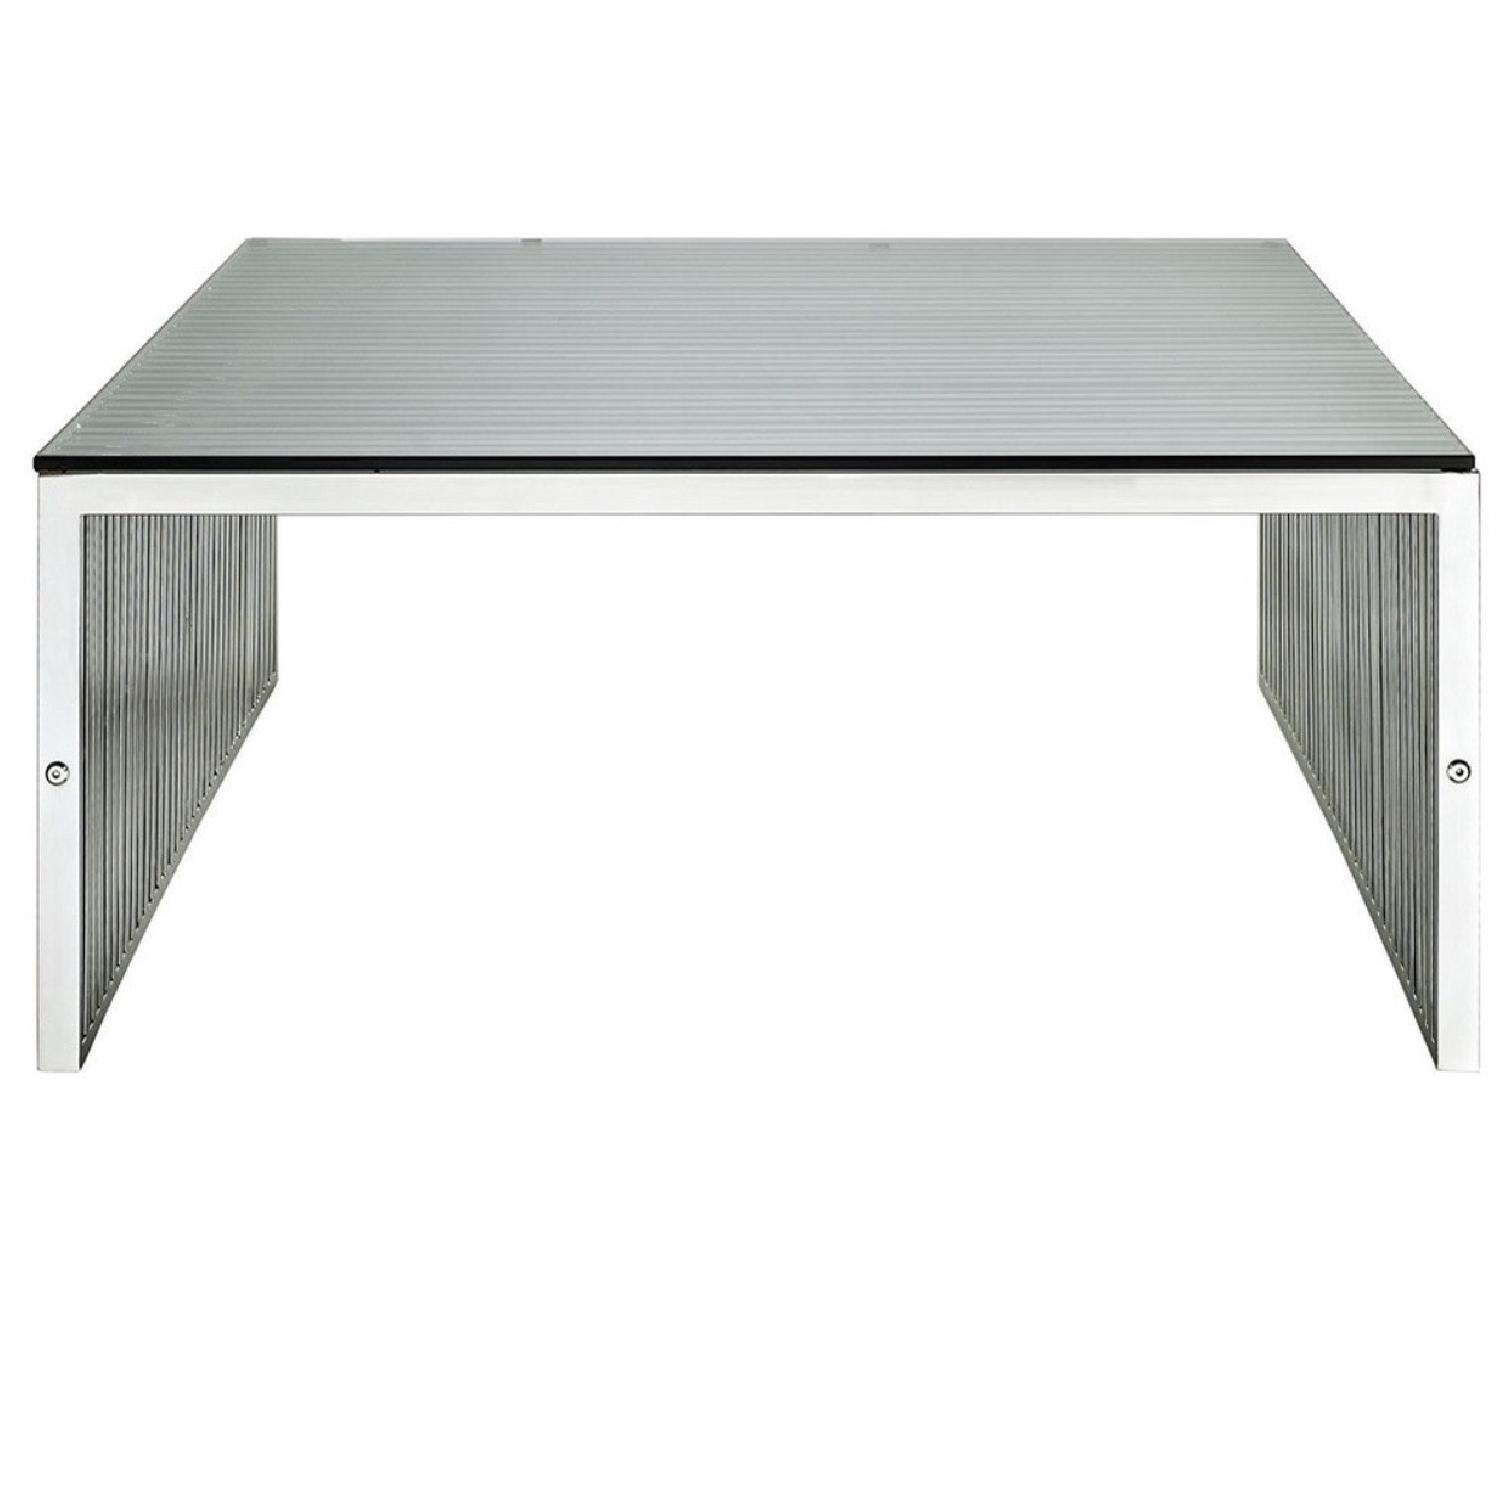 Modway Metal Coffee Table W/ Tempered Glass Top ...